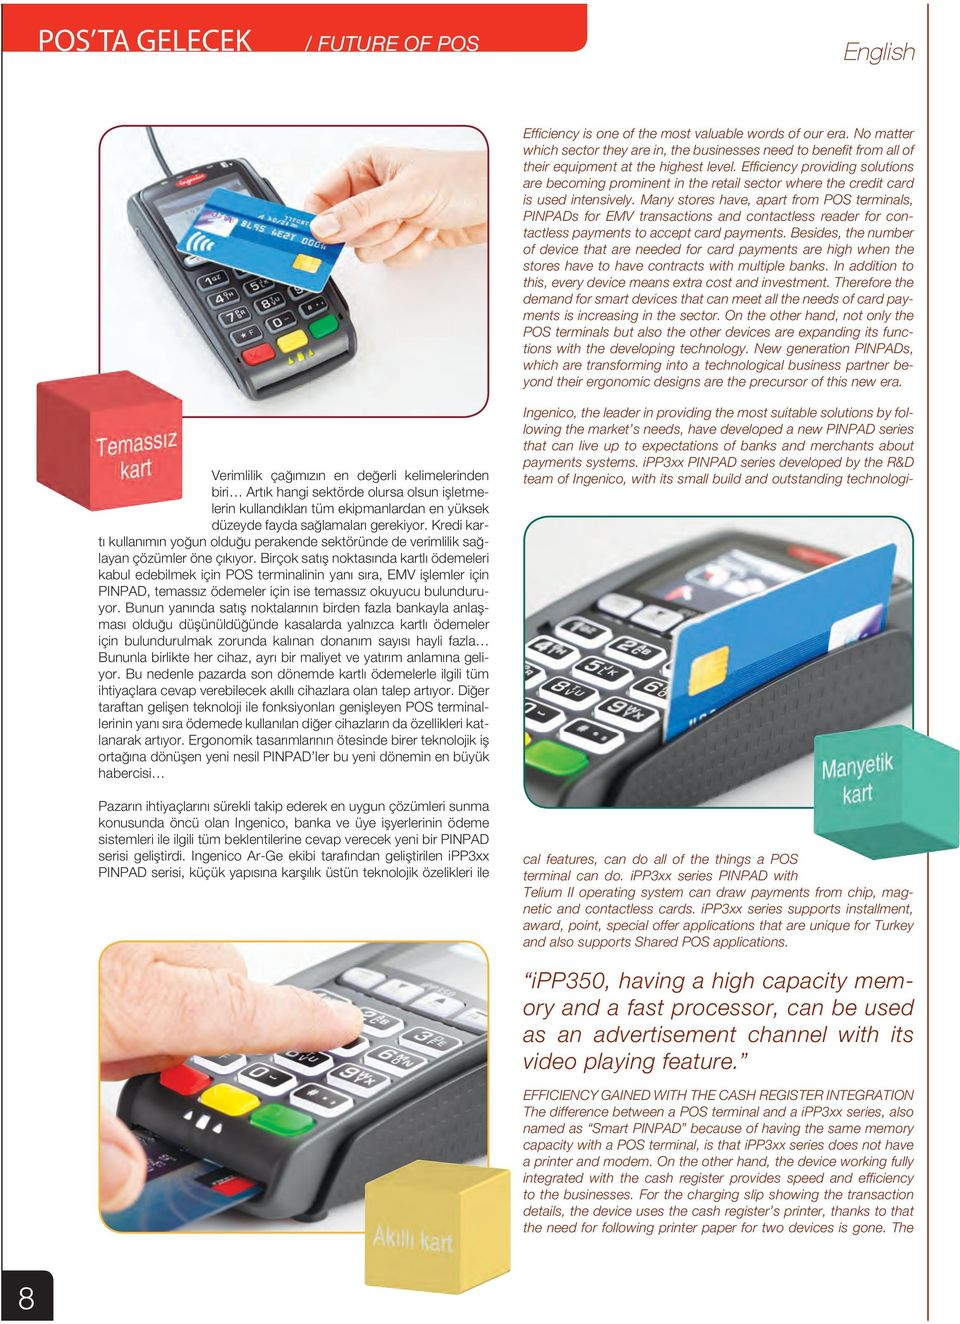 Efficiency providing solutions are becoming prominent in the retail sector where the credit card is used intensively.